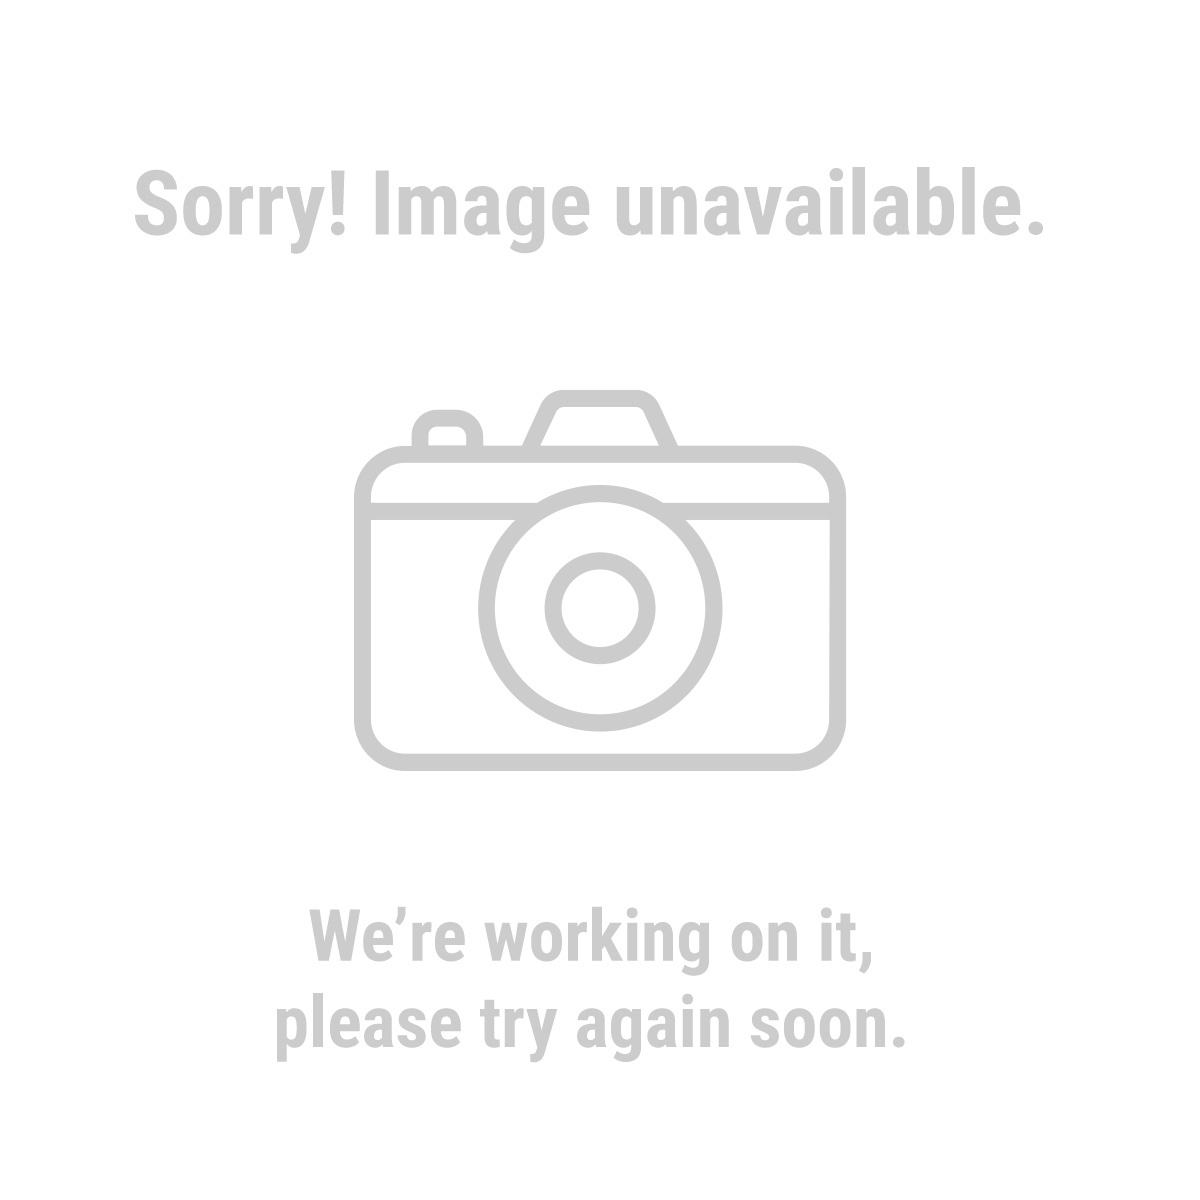 HARDY 62524 Professional Mechanic's Gloves Medium